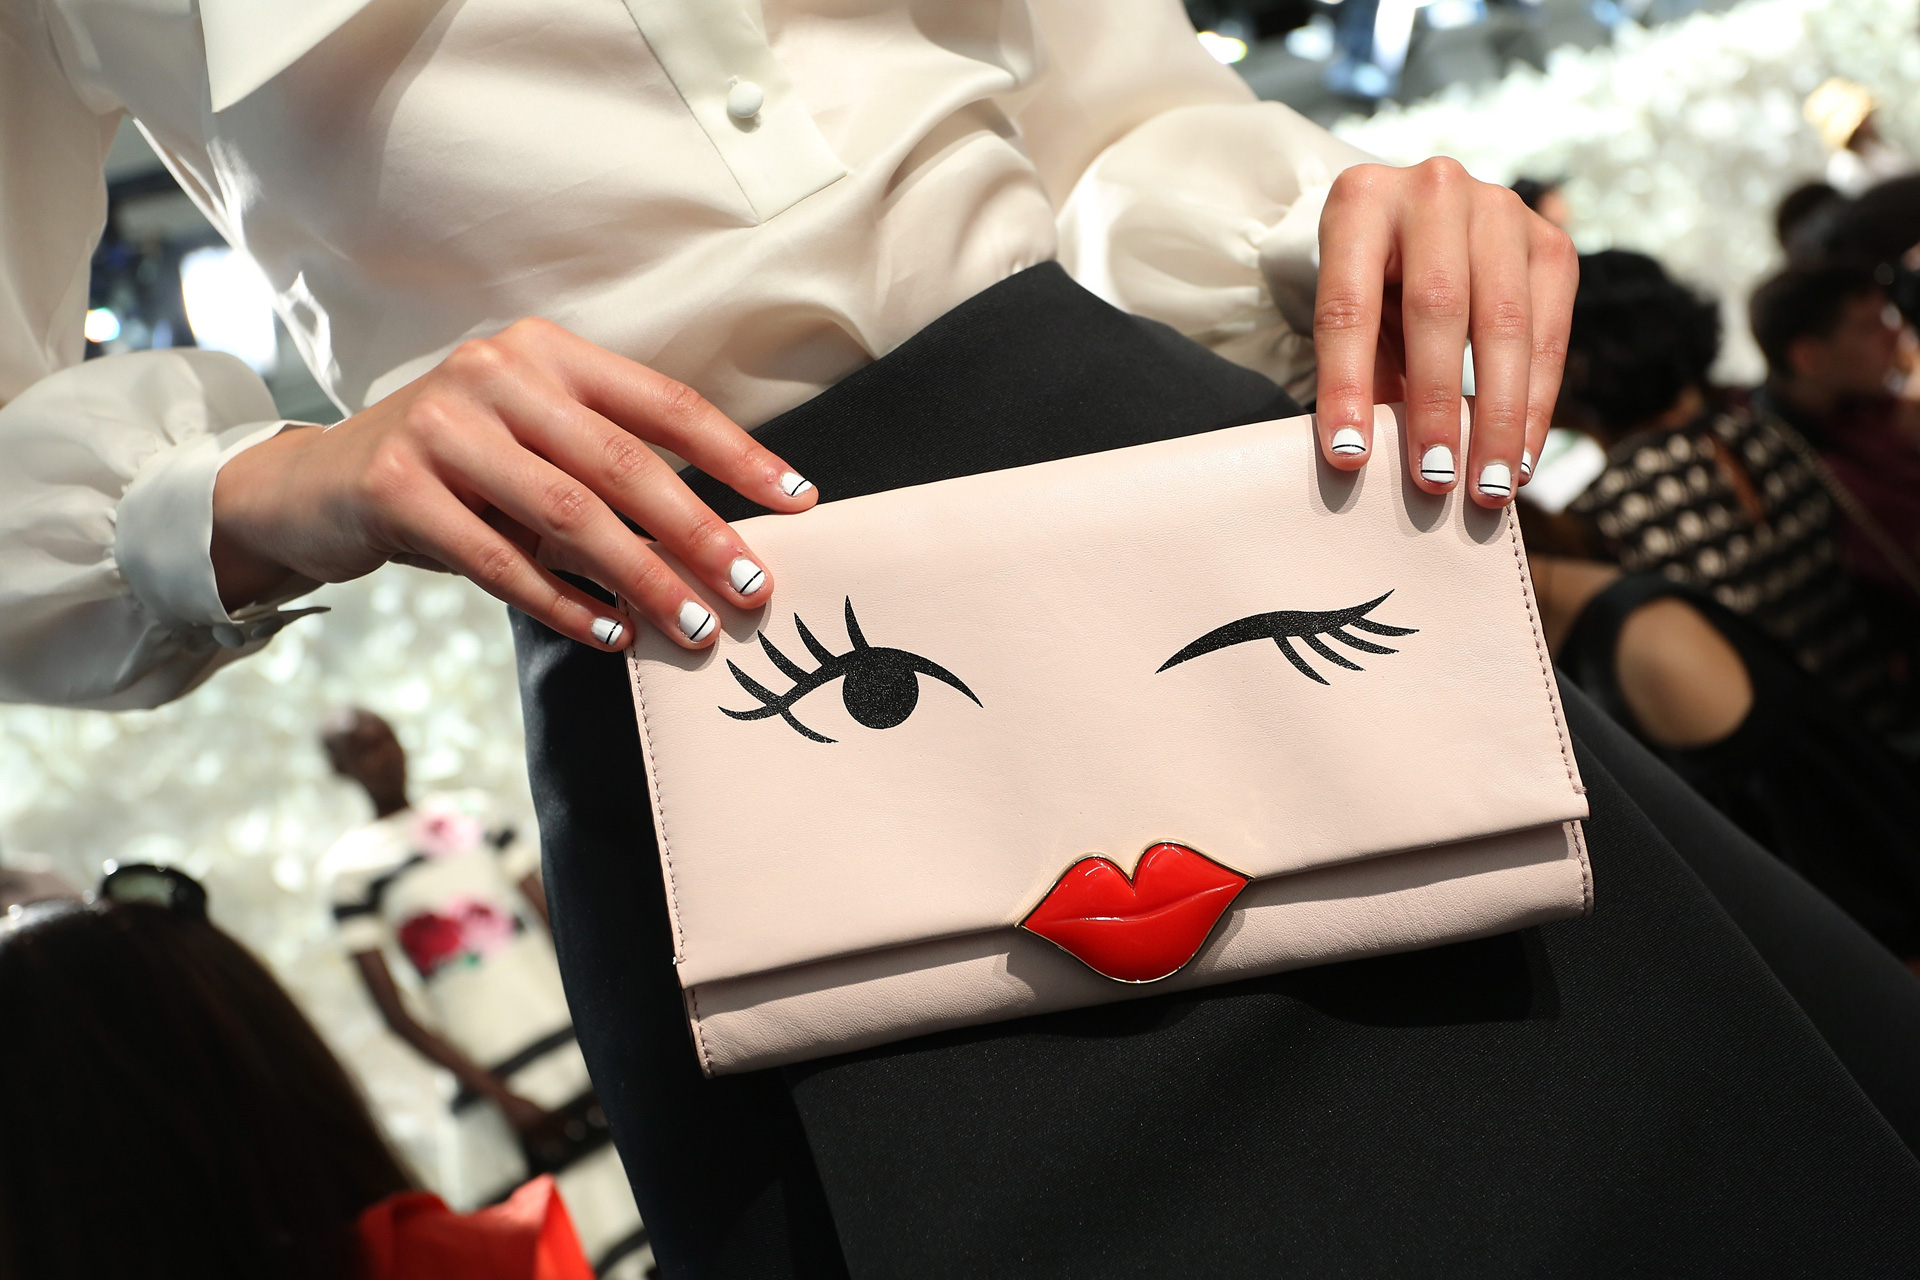 Quirky bags from Kate Spade's spring 2015 collection 7